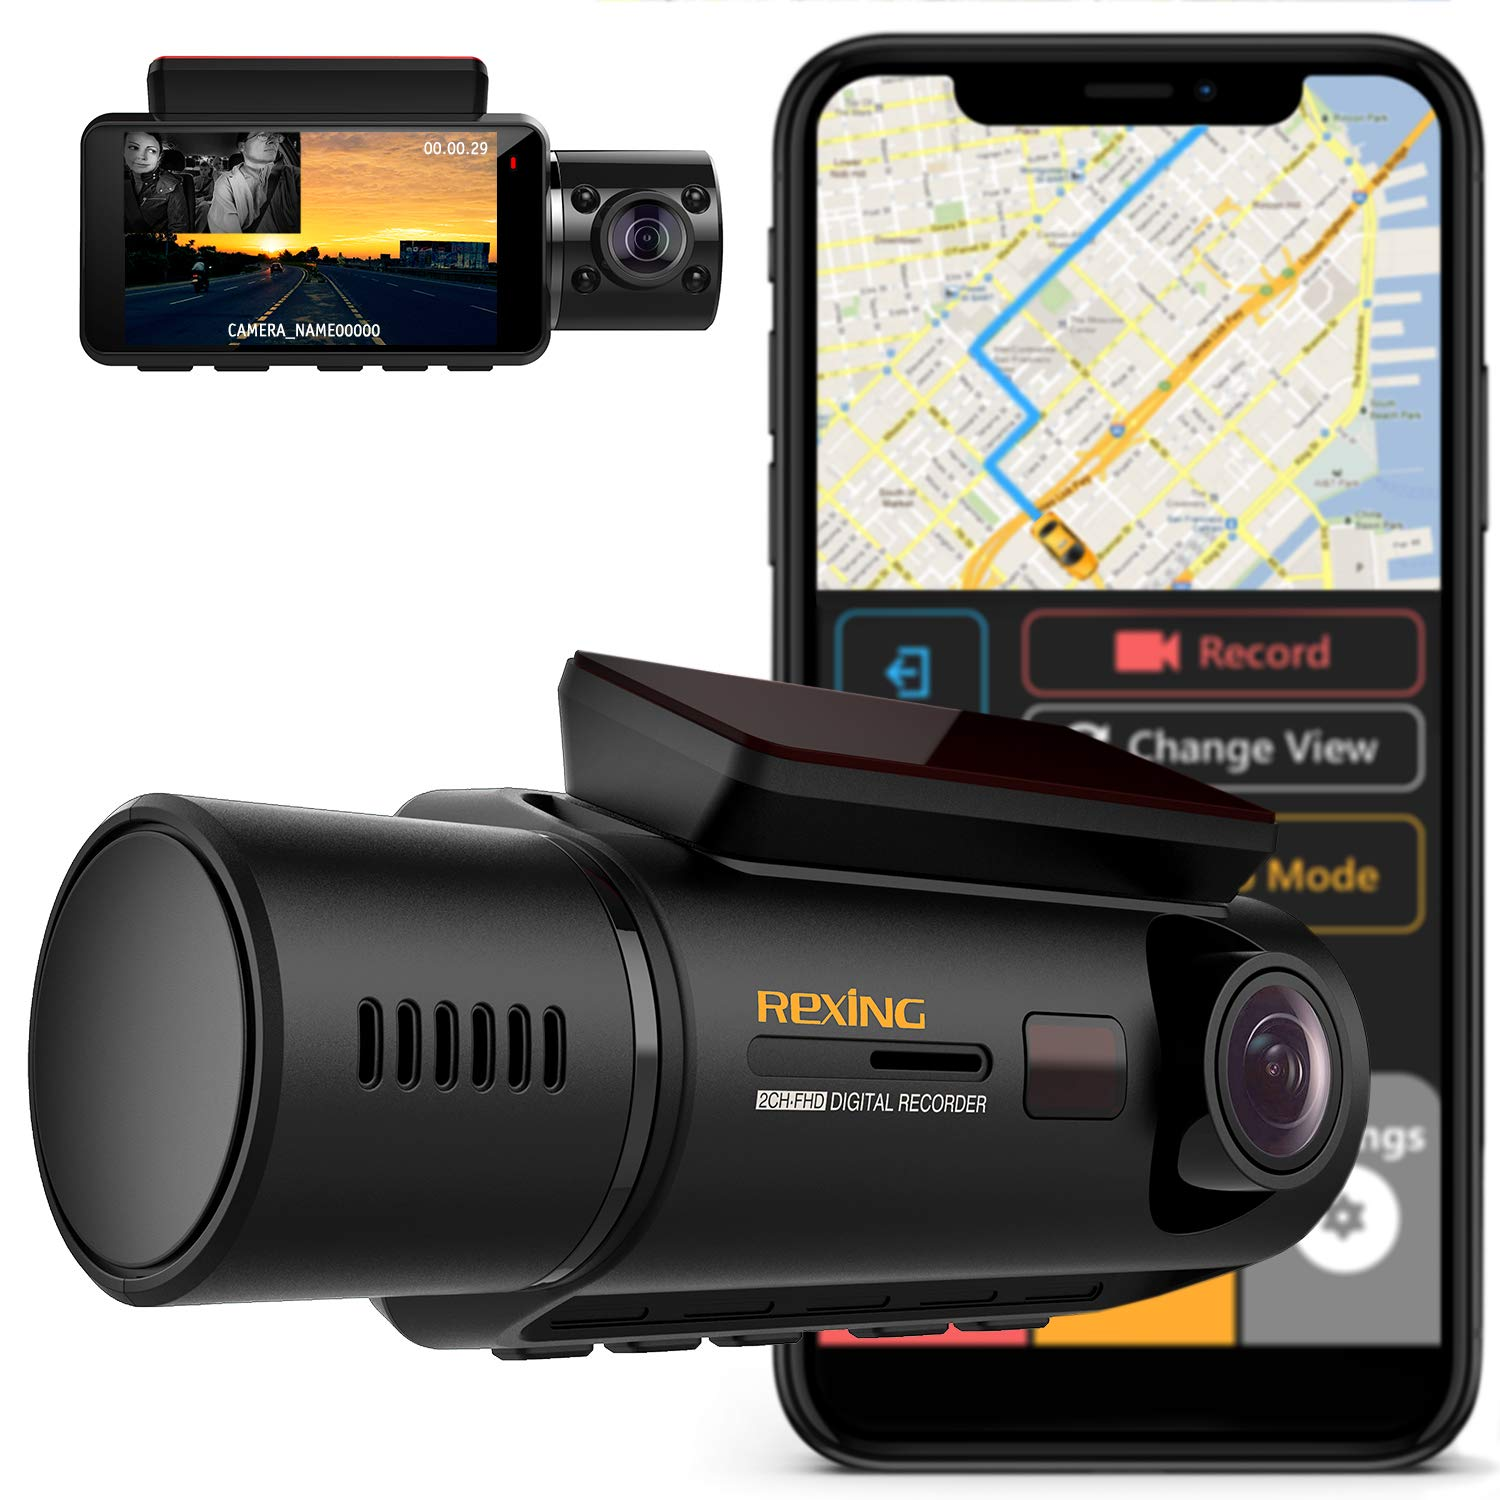 REXING V3 Dual Camera Front and Inside Cabin Infrared Night Vision Full HD 1080p WiFi Car Taxi Dash Cam with Built-in GPS, Supercapacitor, 2.7'' LCD Screen, Parking Monitor, Mobile App by REXING